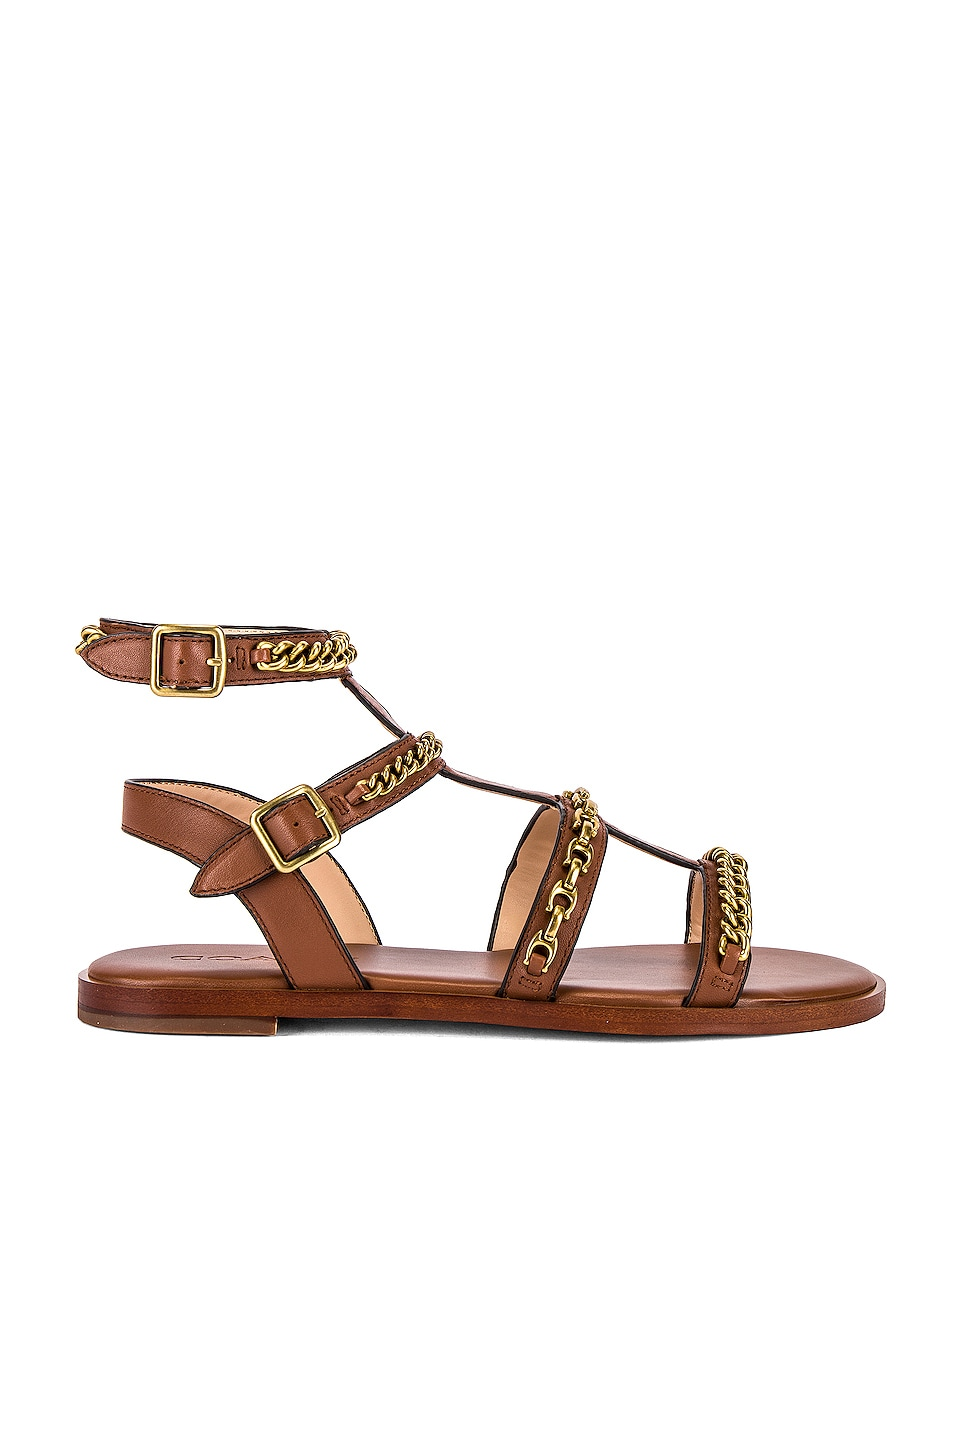 Coach 1941 Haddie Multi Chains Gladiator Sandal in Saddle